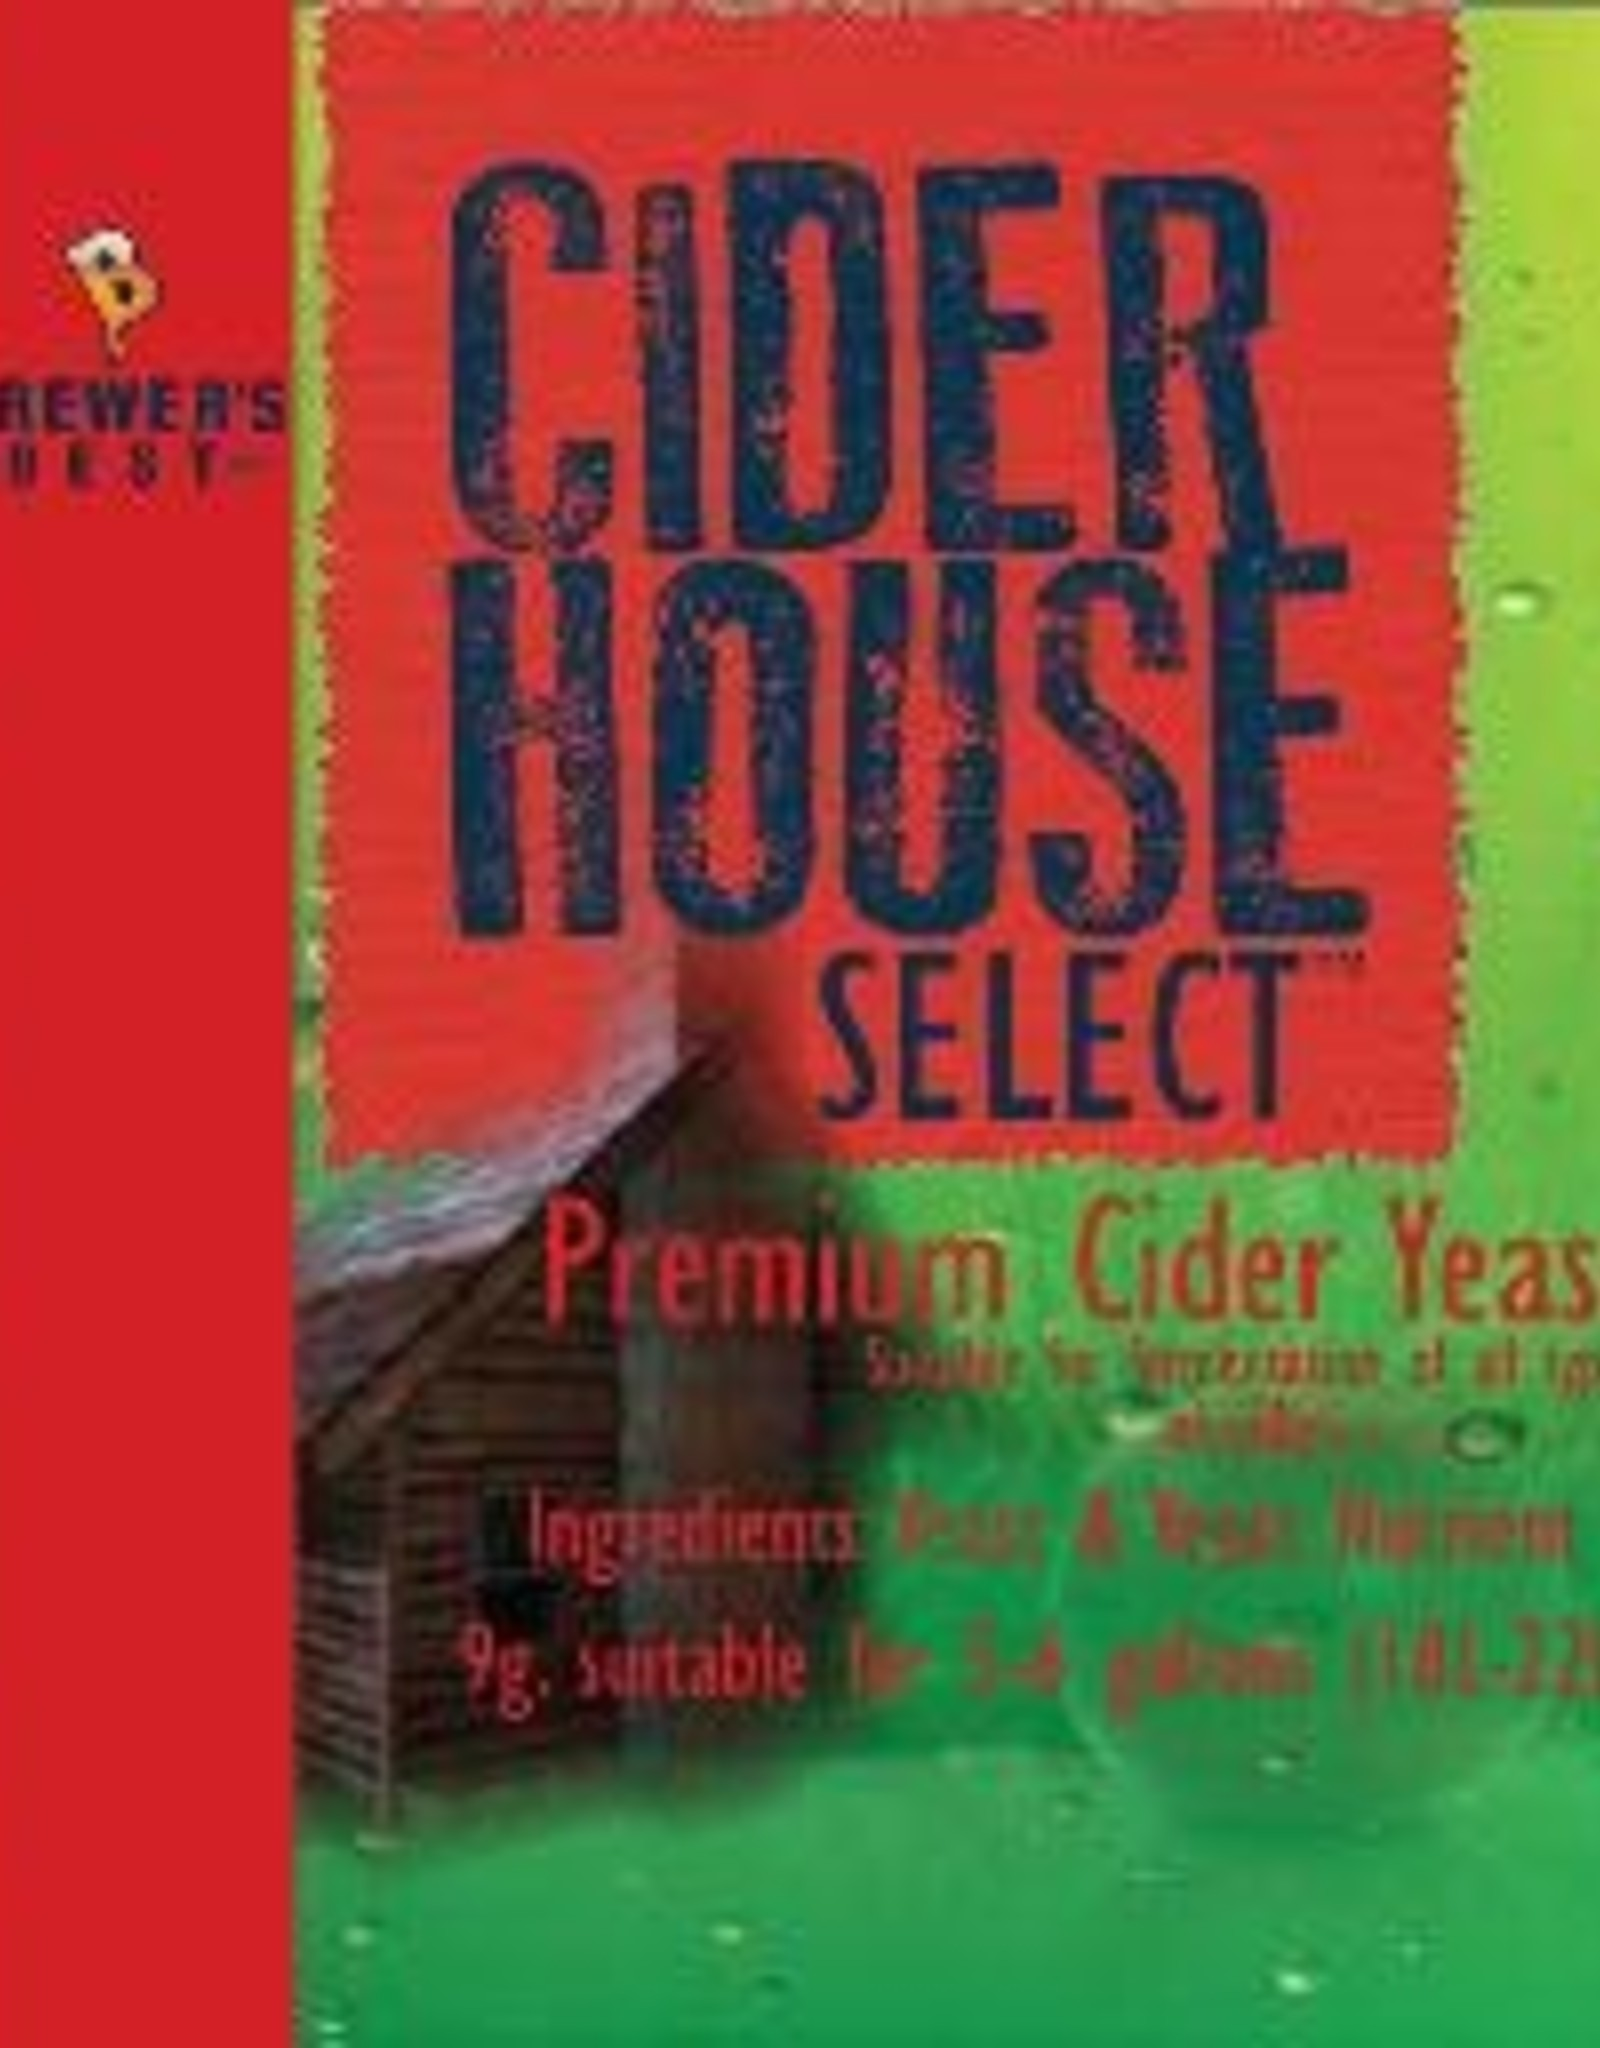 BREWERS BEST Cider House Select yeast is a high ester-producing strain, creating exceptional flavor. Trace nutrition has been included in this sachet to ensure the best possible cider quality through good healthy yeast. Our active dried yeast is suitable for all types